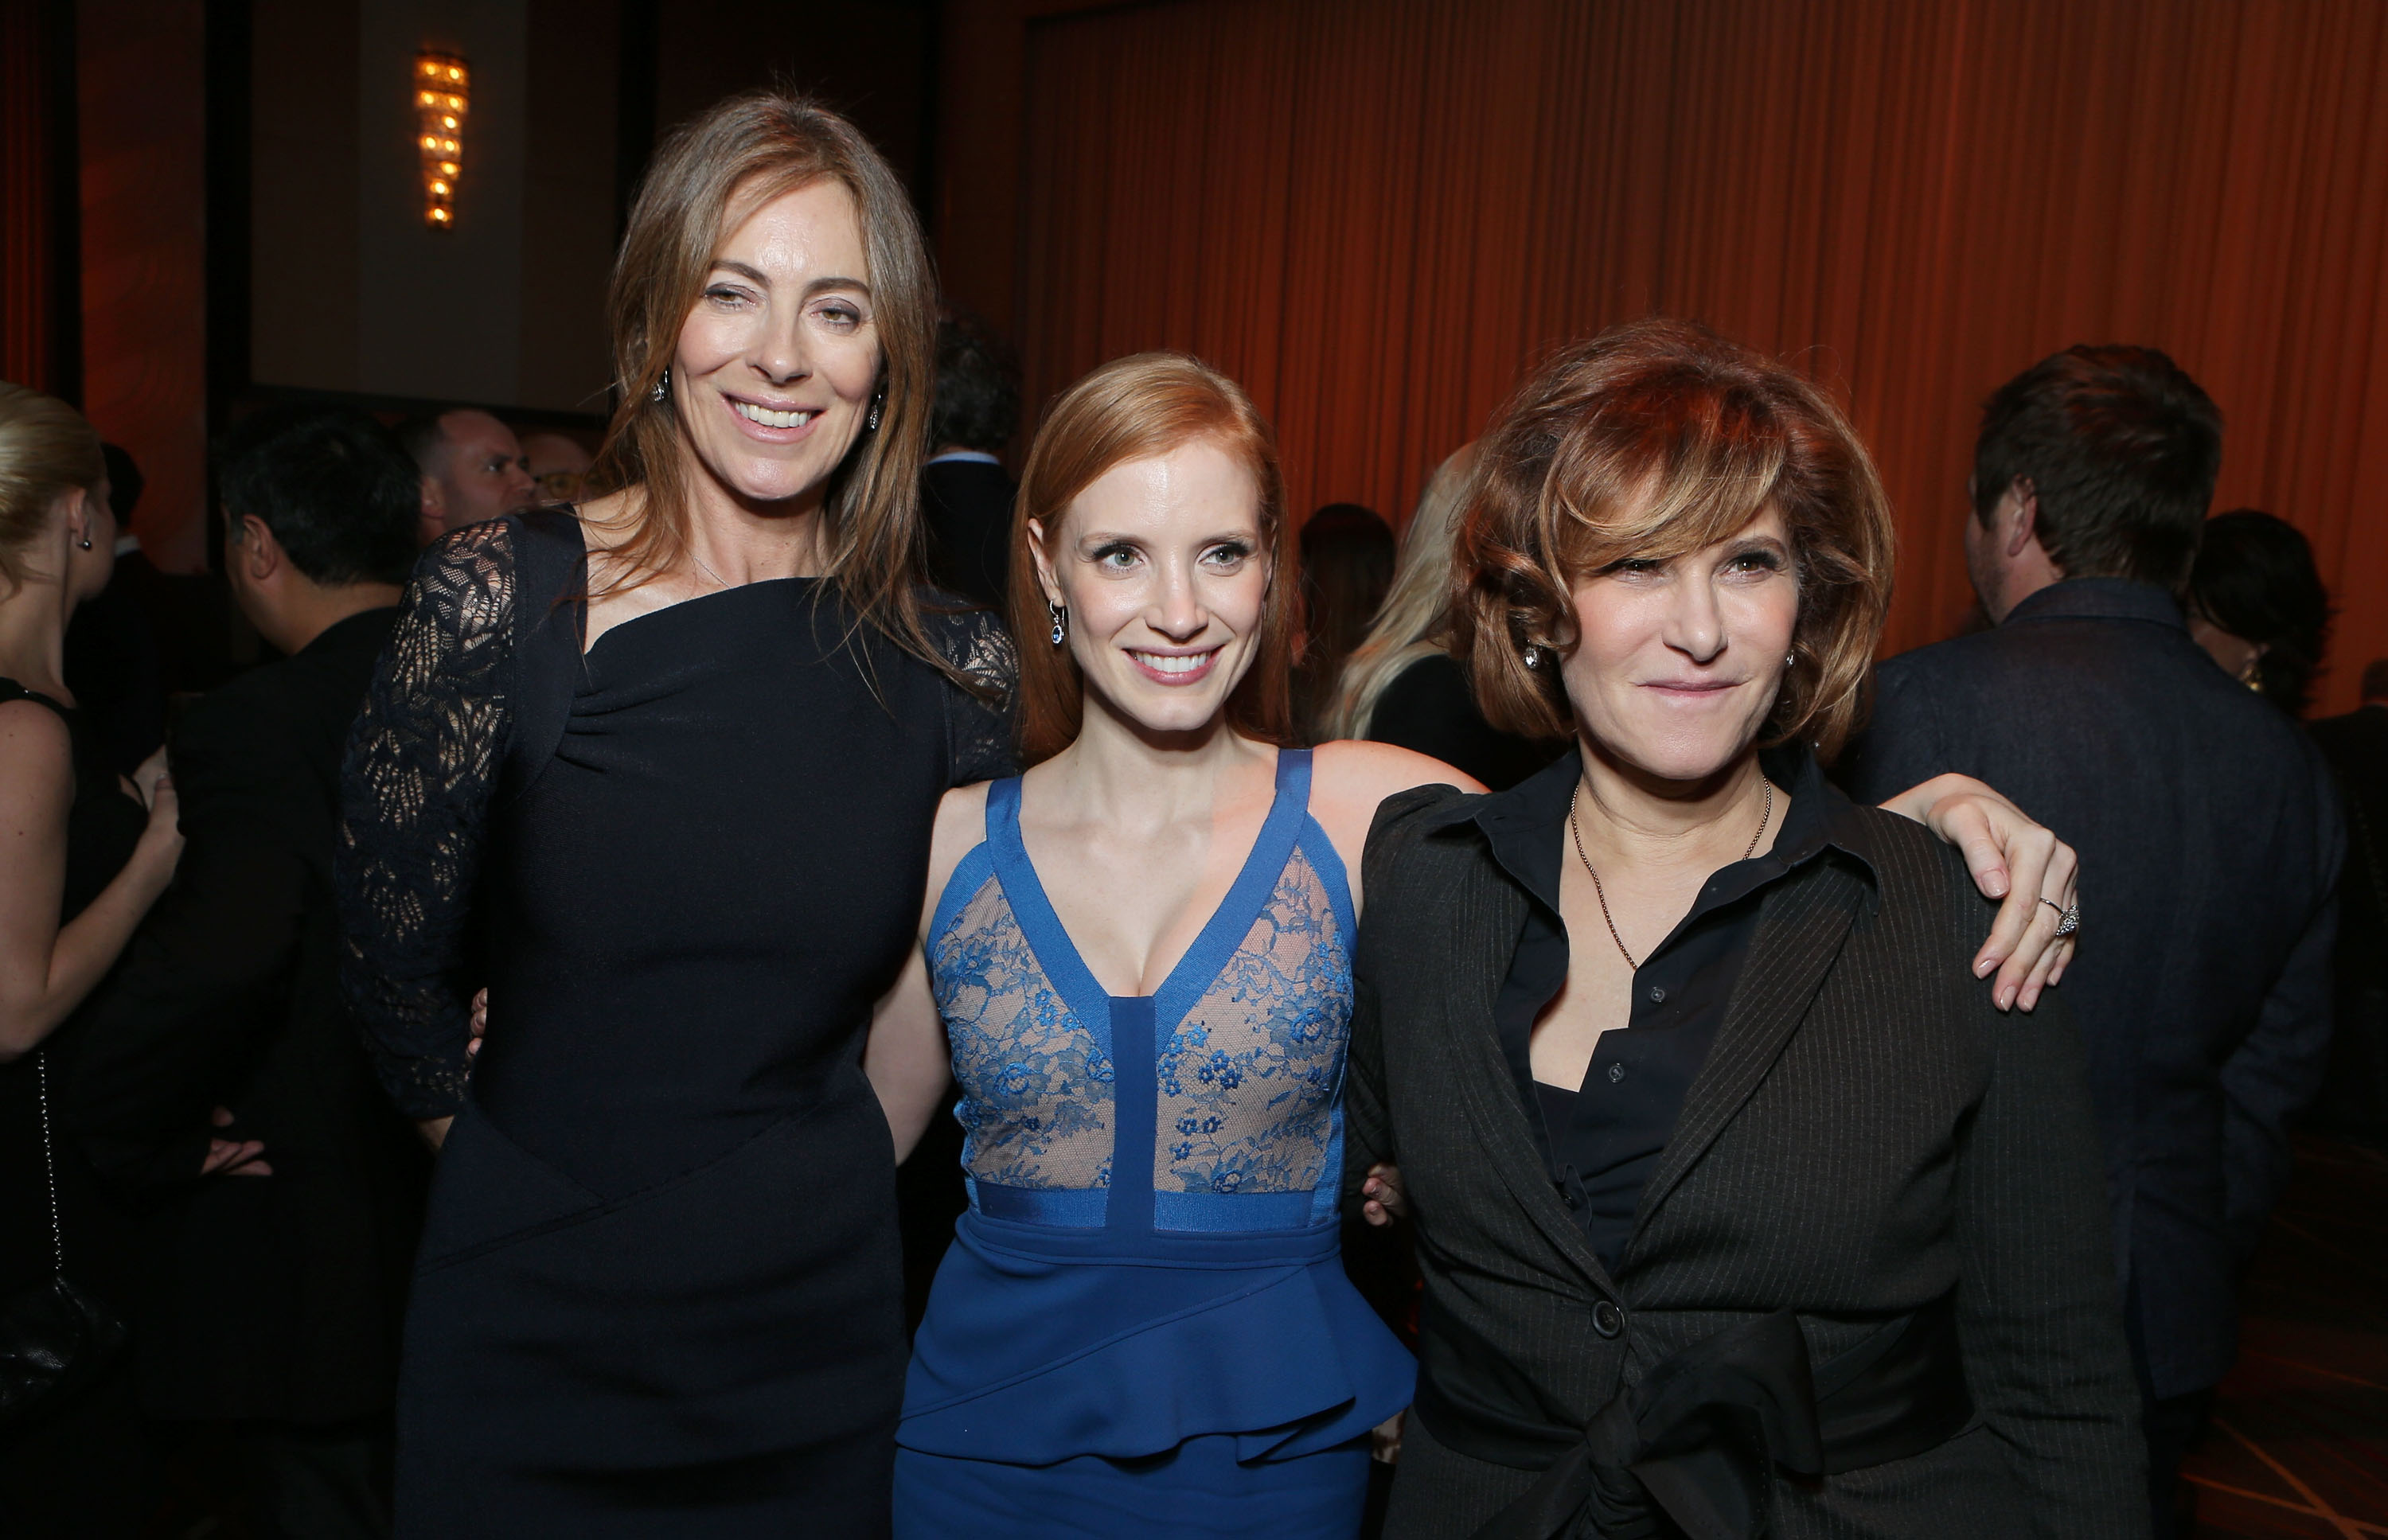 HOLLYWOOD, CA - DECEMBER 10: Director/Producer Kathryn Bigelow, Jessica Chastain and Sony's Amy Pascal at Columbia Pictures 'Zero Dark Thirty' Premiere at Dolby Theatre on December 10, 2012 in Hollywood, California. Kathryn Bigelow Jessica Chastain Amy PascalColumbia Pictures 'Zero Dark Thirty' Premiere Hollywood Los Angeles, America.